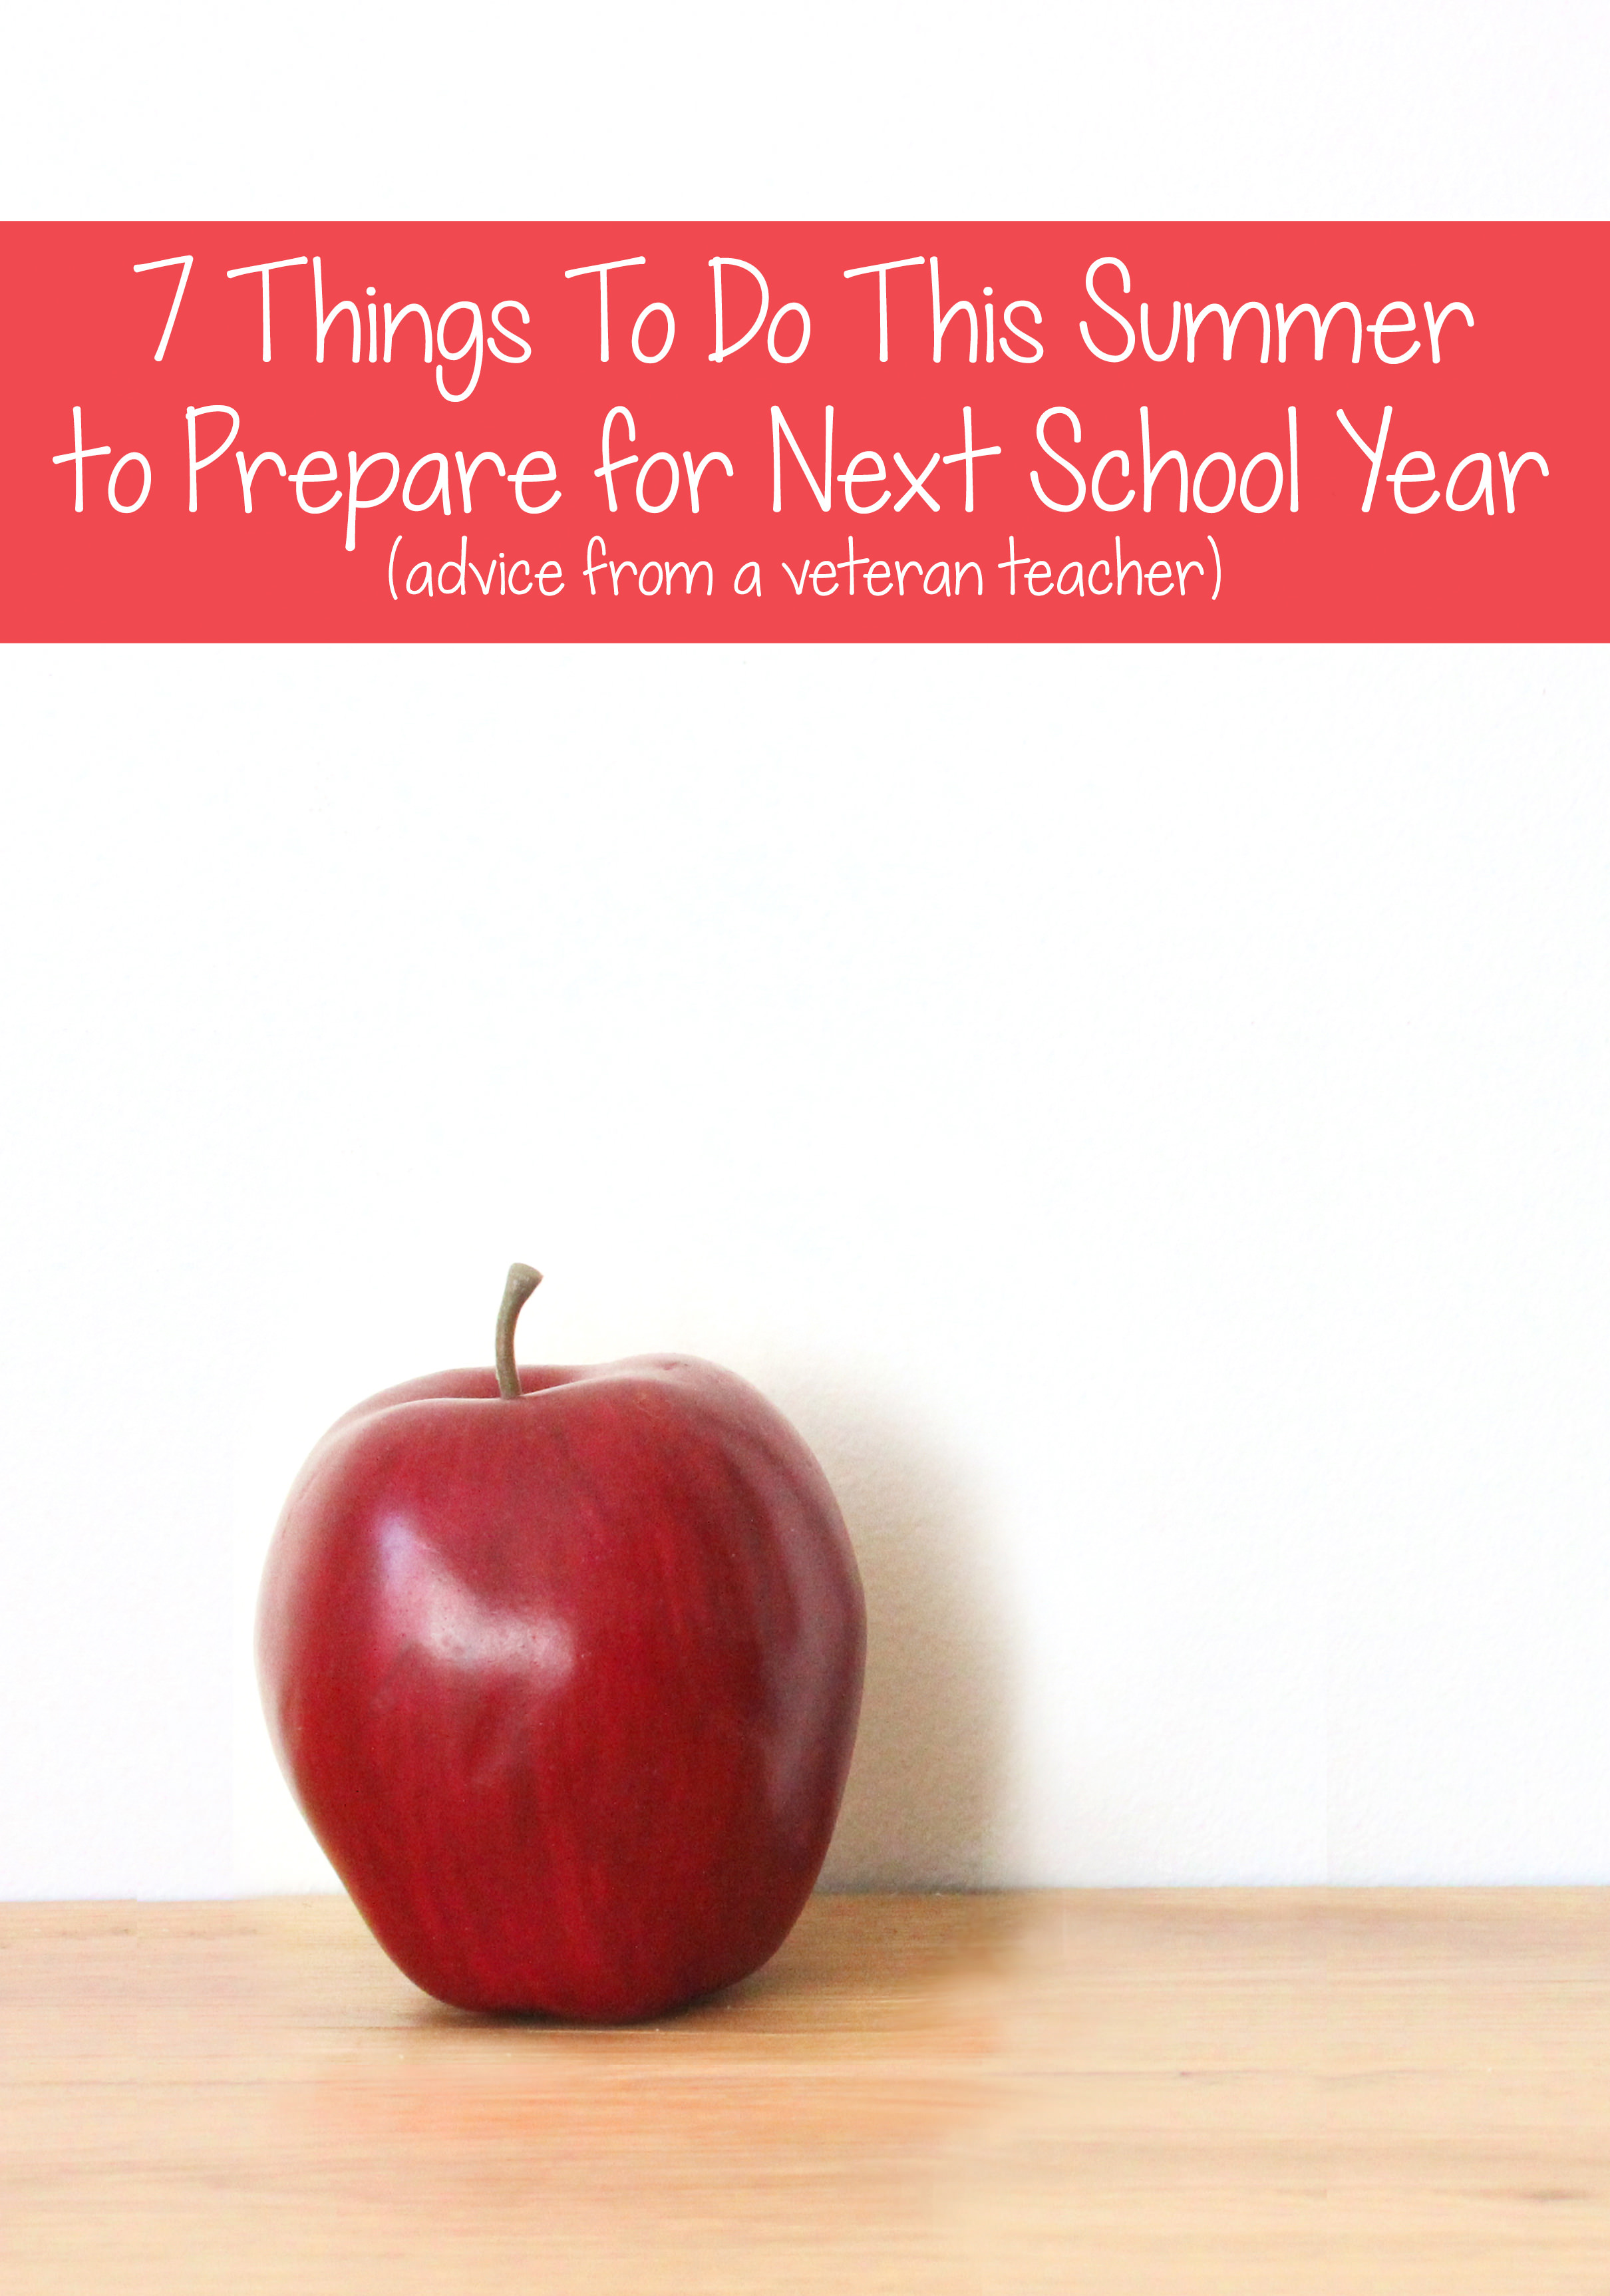 How to Prepare for School: 7 Things You Can Do Over The Summer